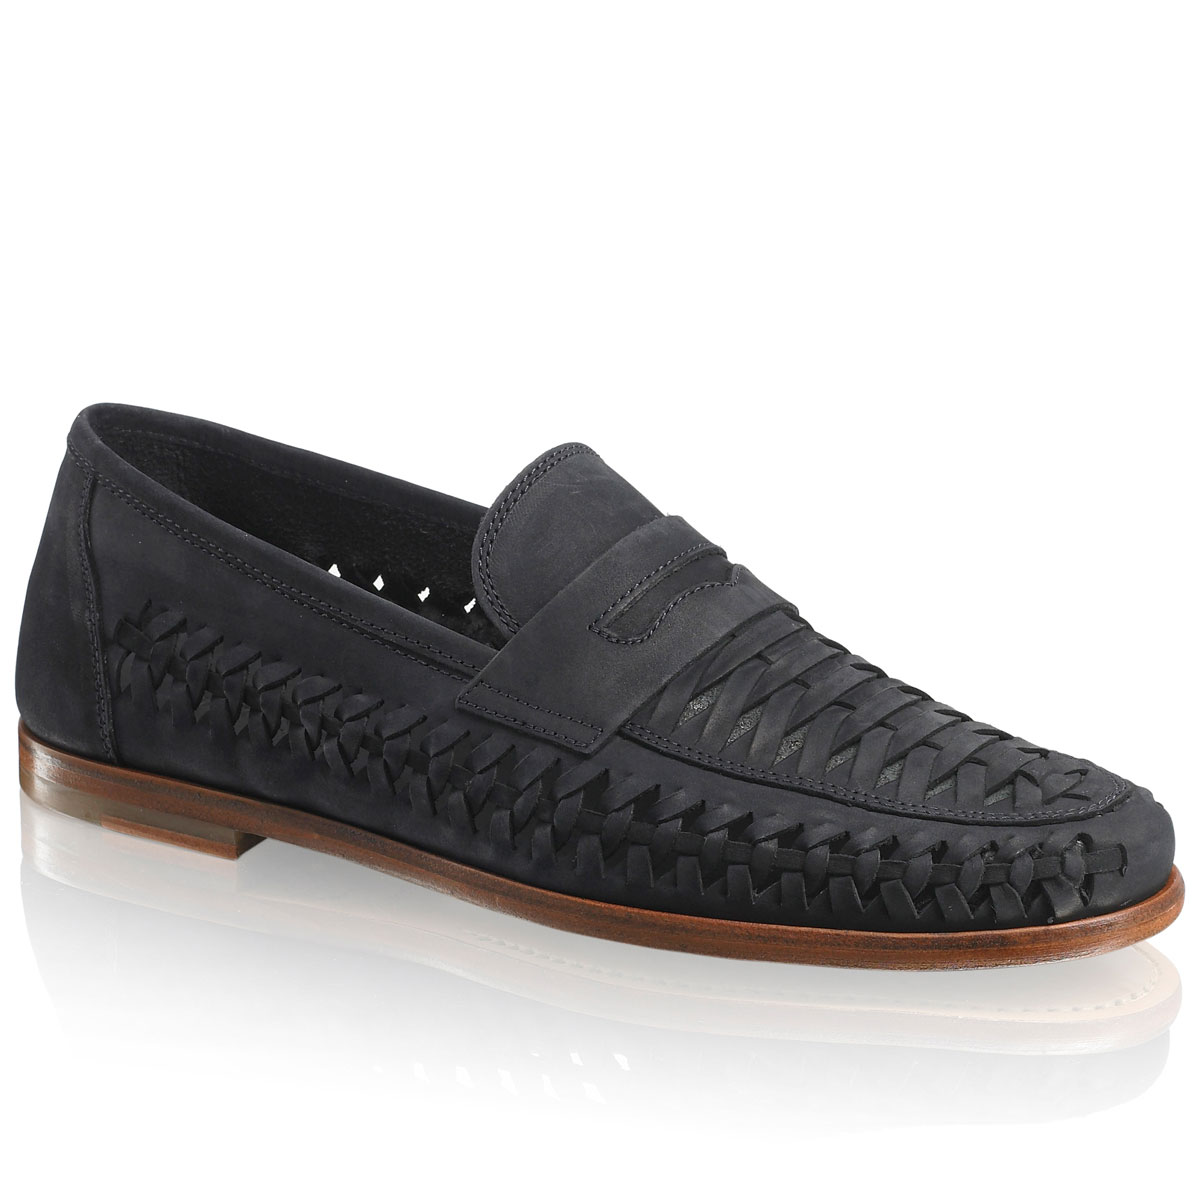 Russell and Bromley UPPERCUT Woven Slip-On